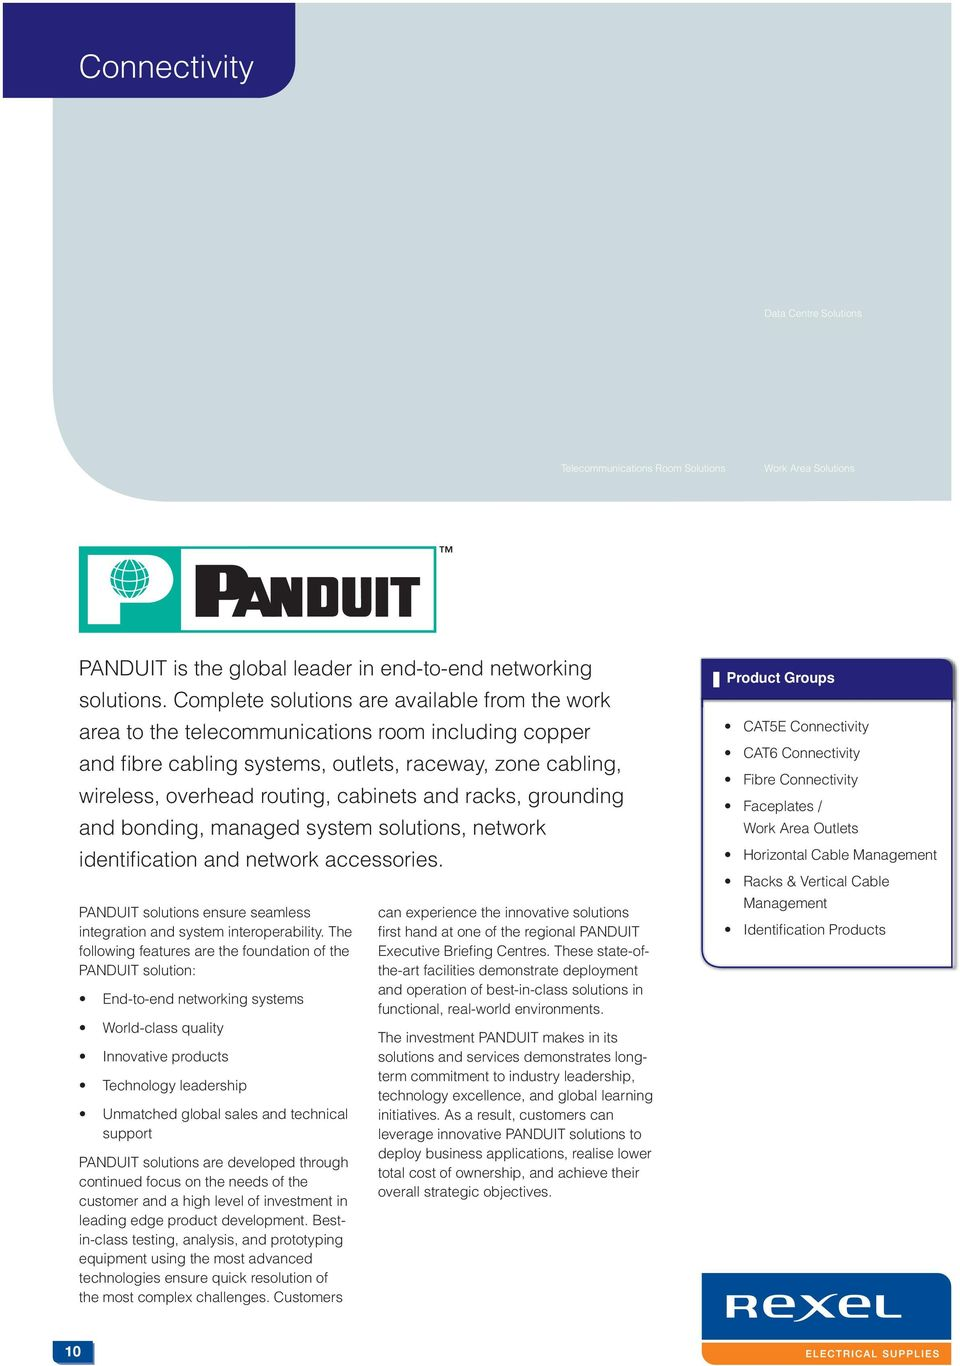 Data Solutions For The Australian Industry With Products From Panduit Rj45 Wiring Diagram And Racks Grounding Bonding Managed System Network Identifi Cation